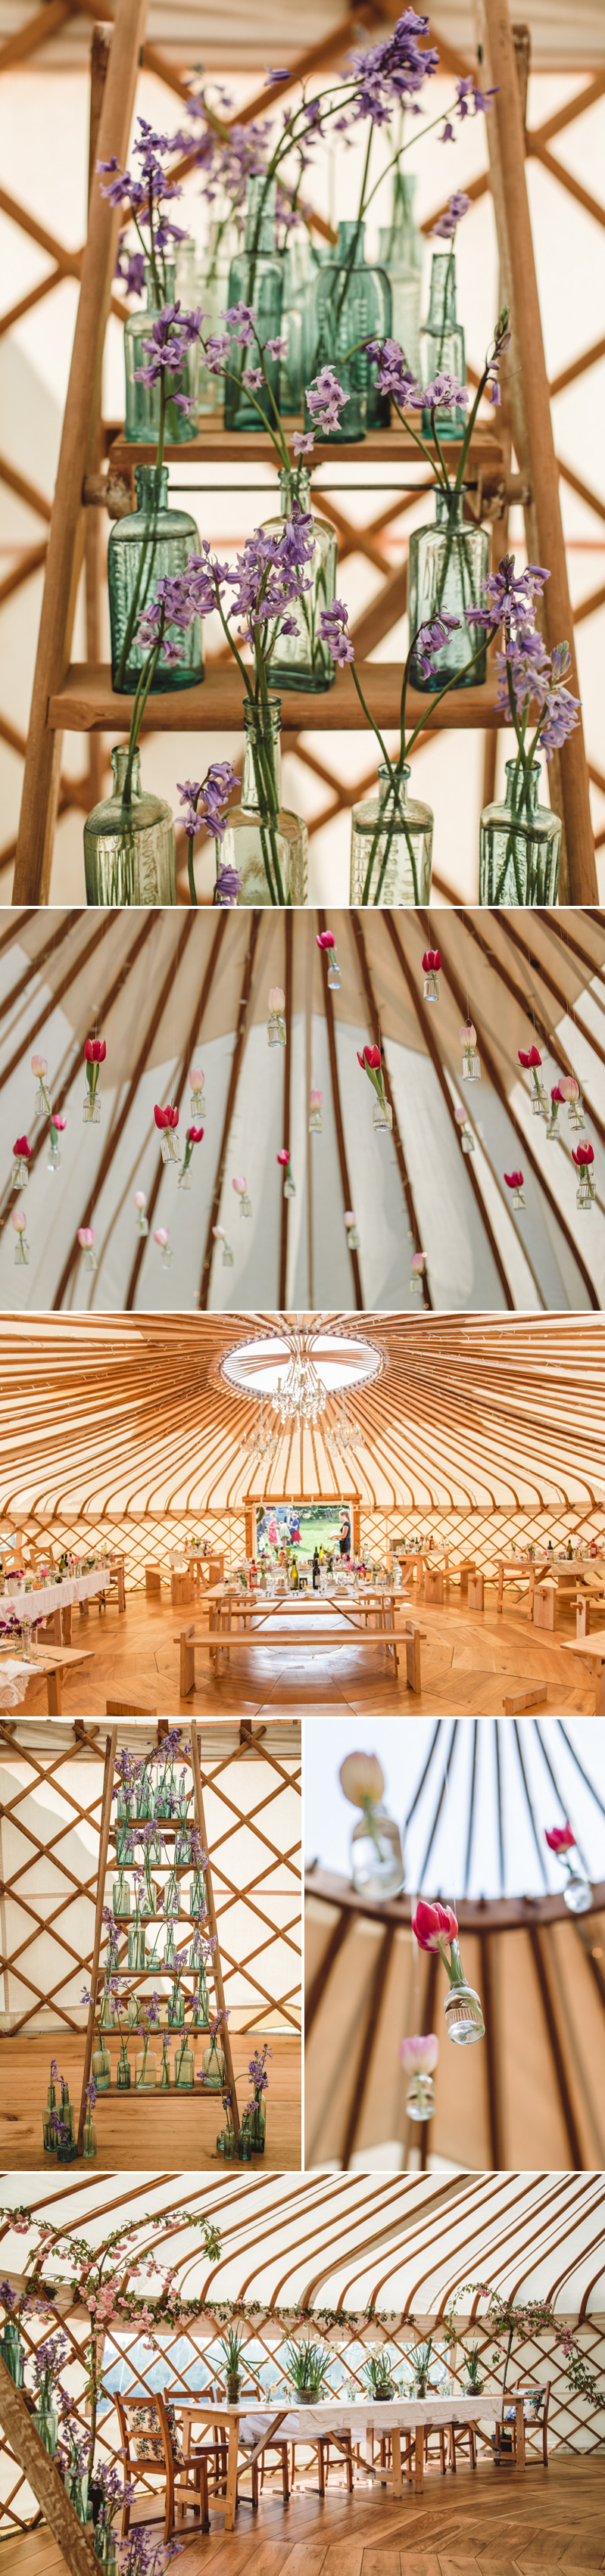 coco-wedding-venues-wedding-yurts-the-practical-guide-to-hiring-wedding-yurts-4